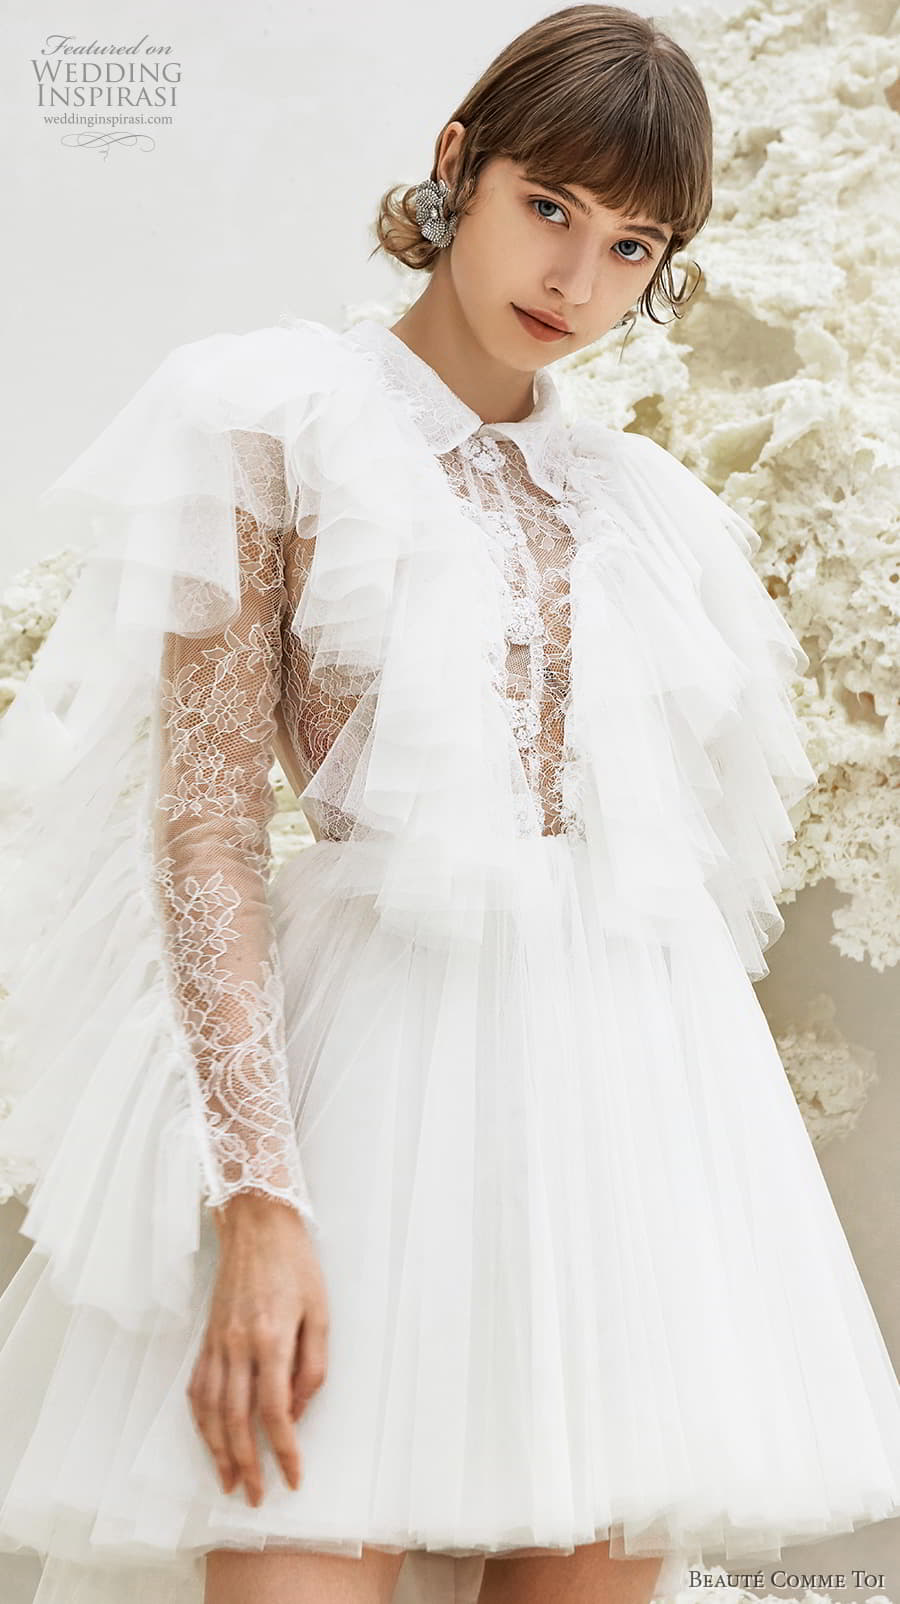 beaute comme toi spring 2022 bridal long tiered sleeves collar neck heavily embellished bodice pretty short wedding dress keyhole back (maeve) zv